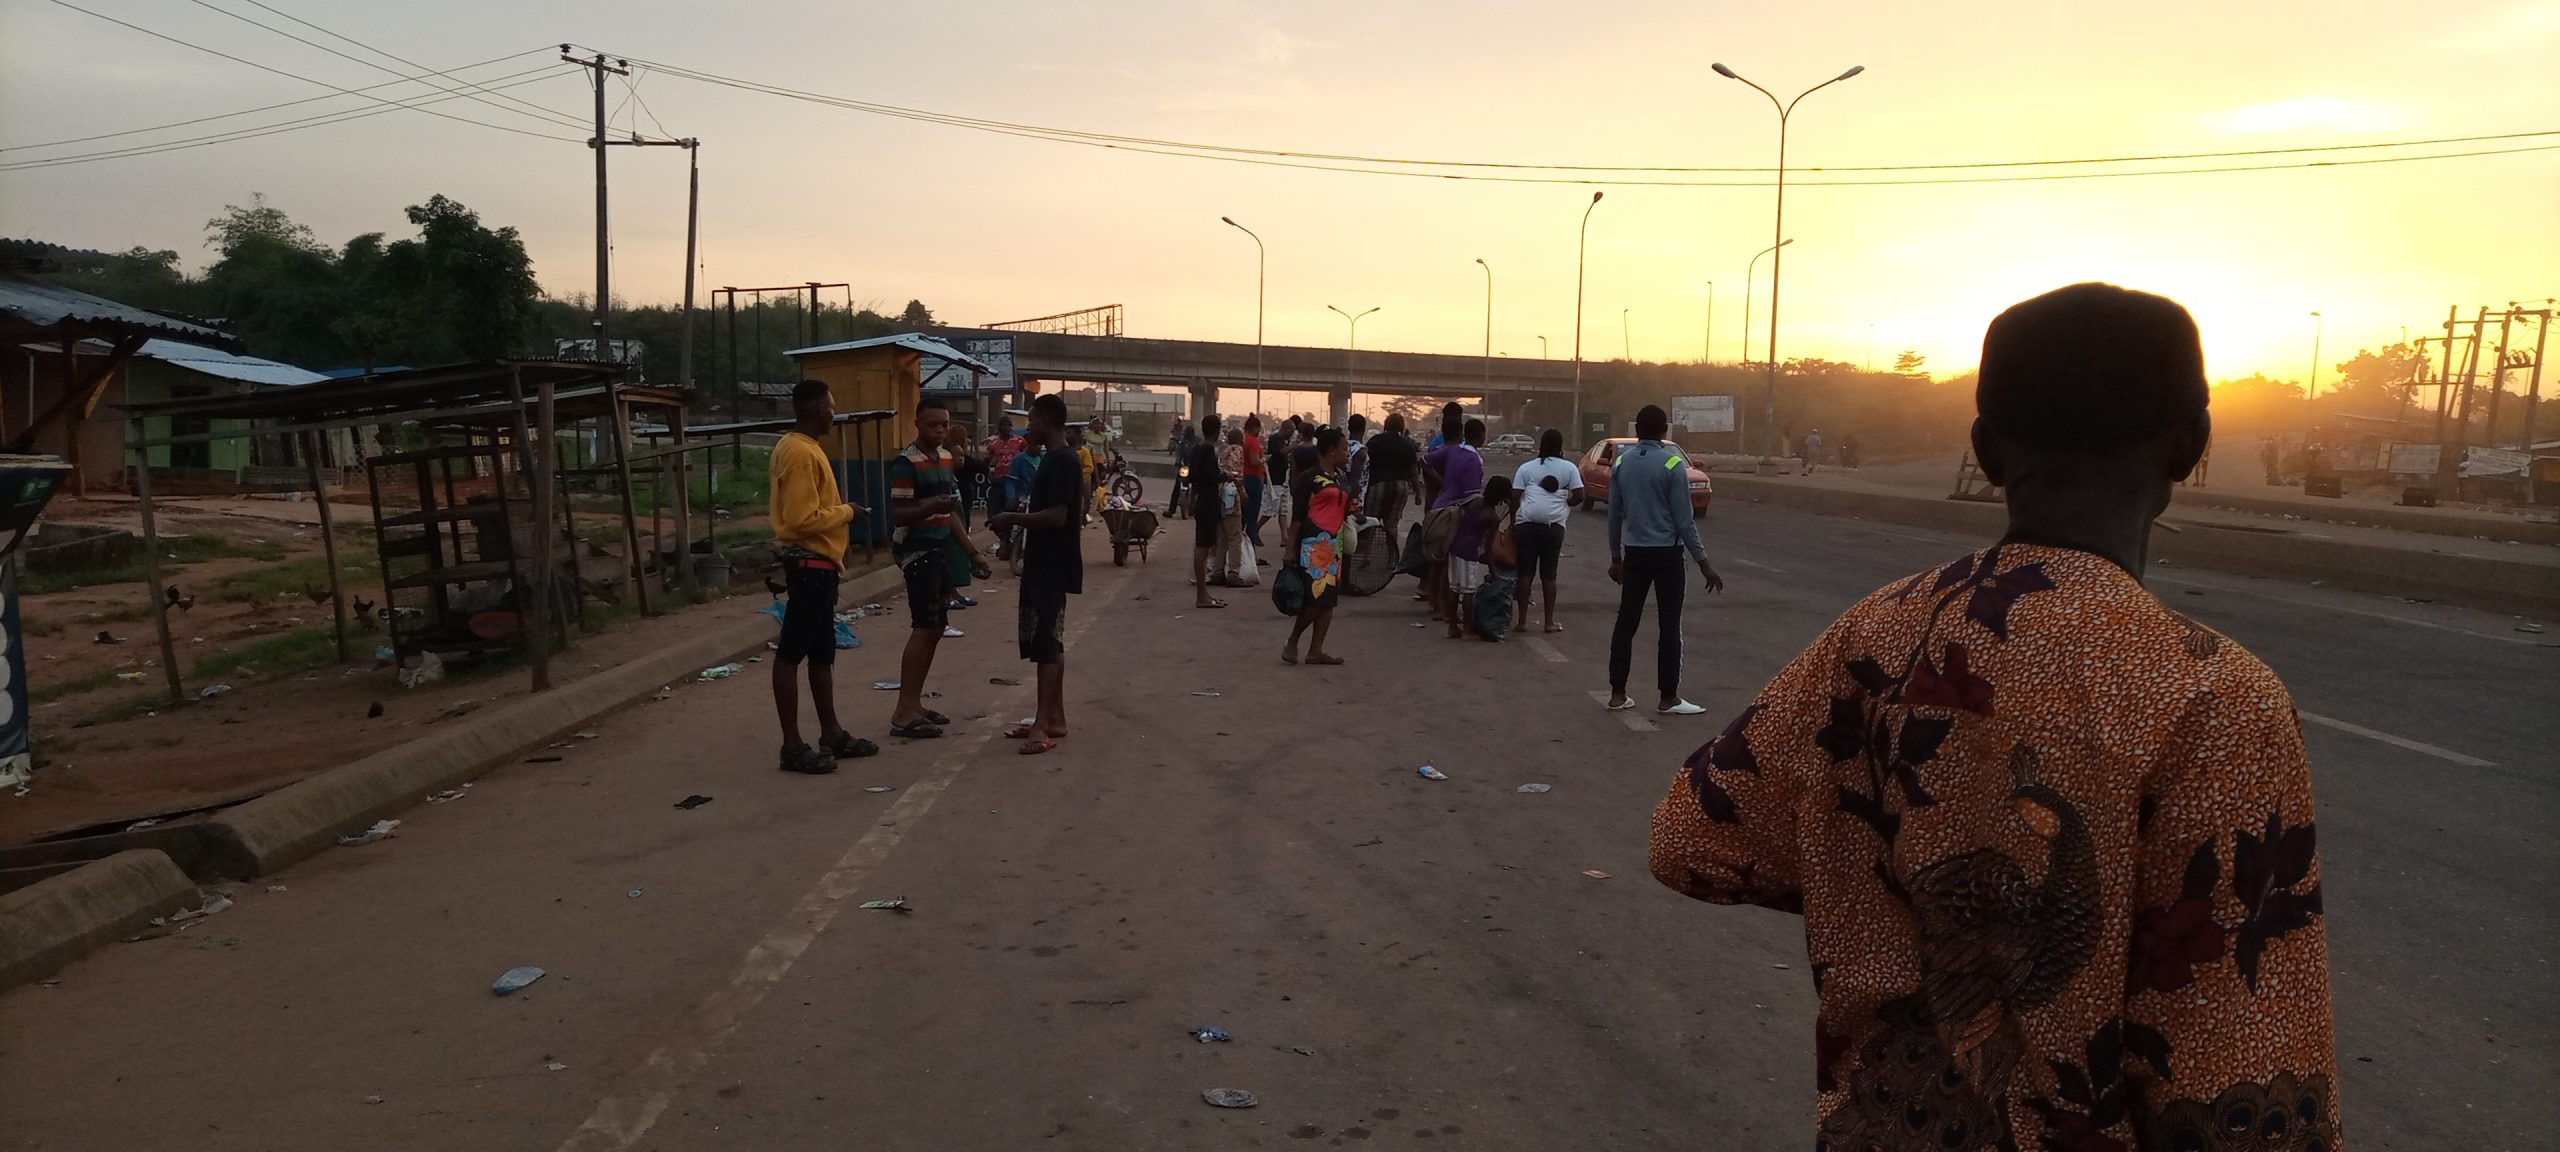 End SARS: Passengers face hardship in Edo as protest shuts down state